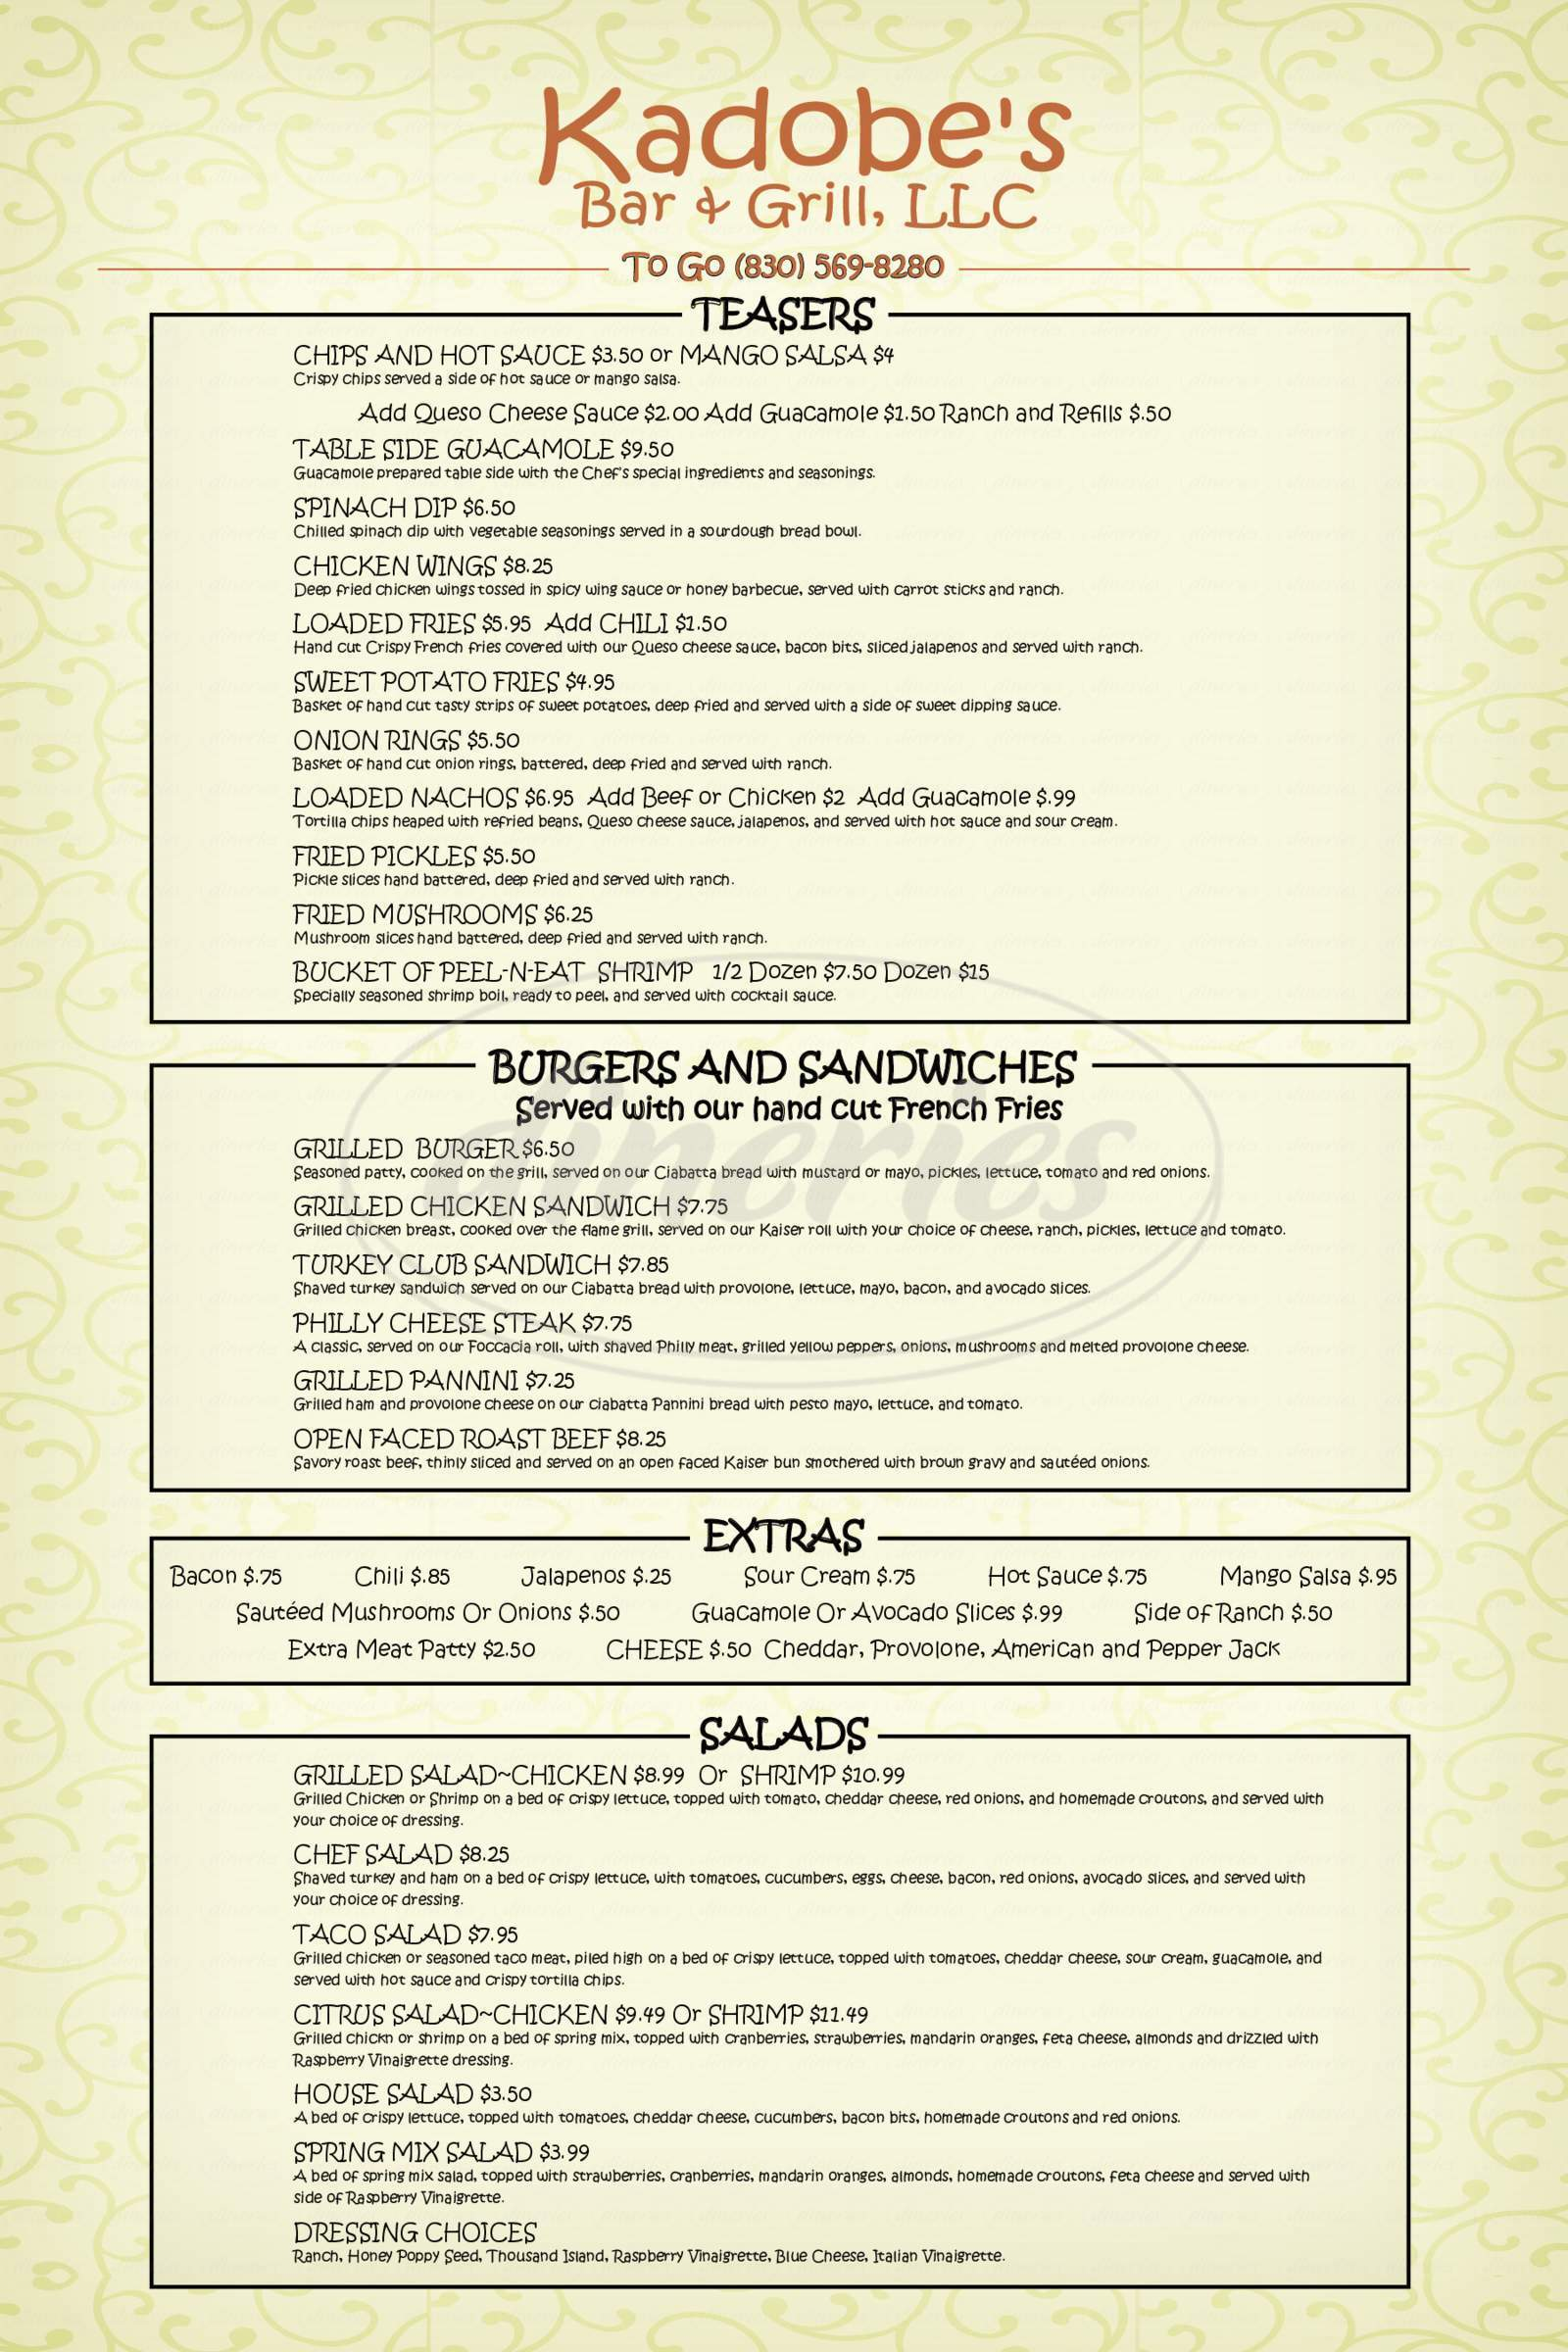 menu for Kadobe's Bar & Grill, LLC